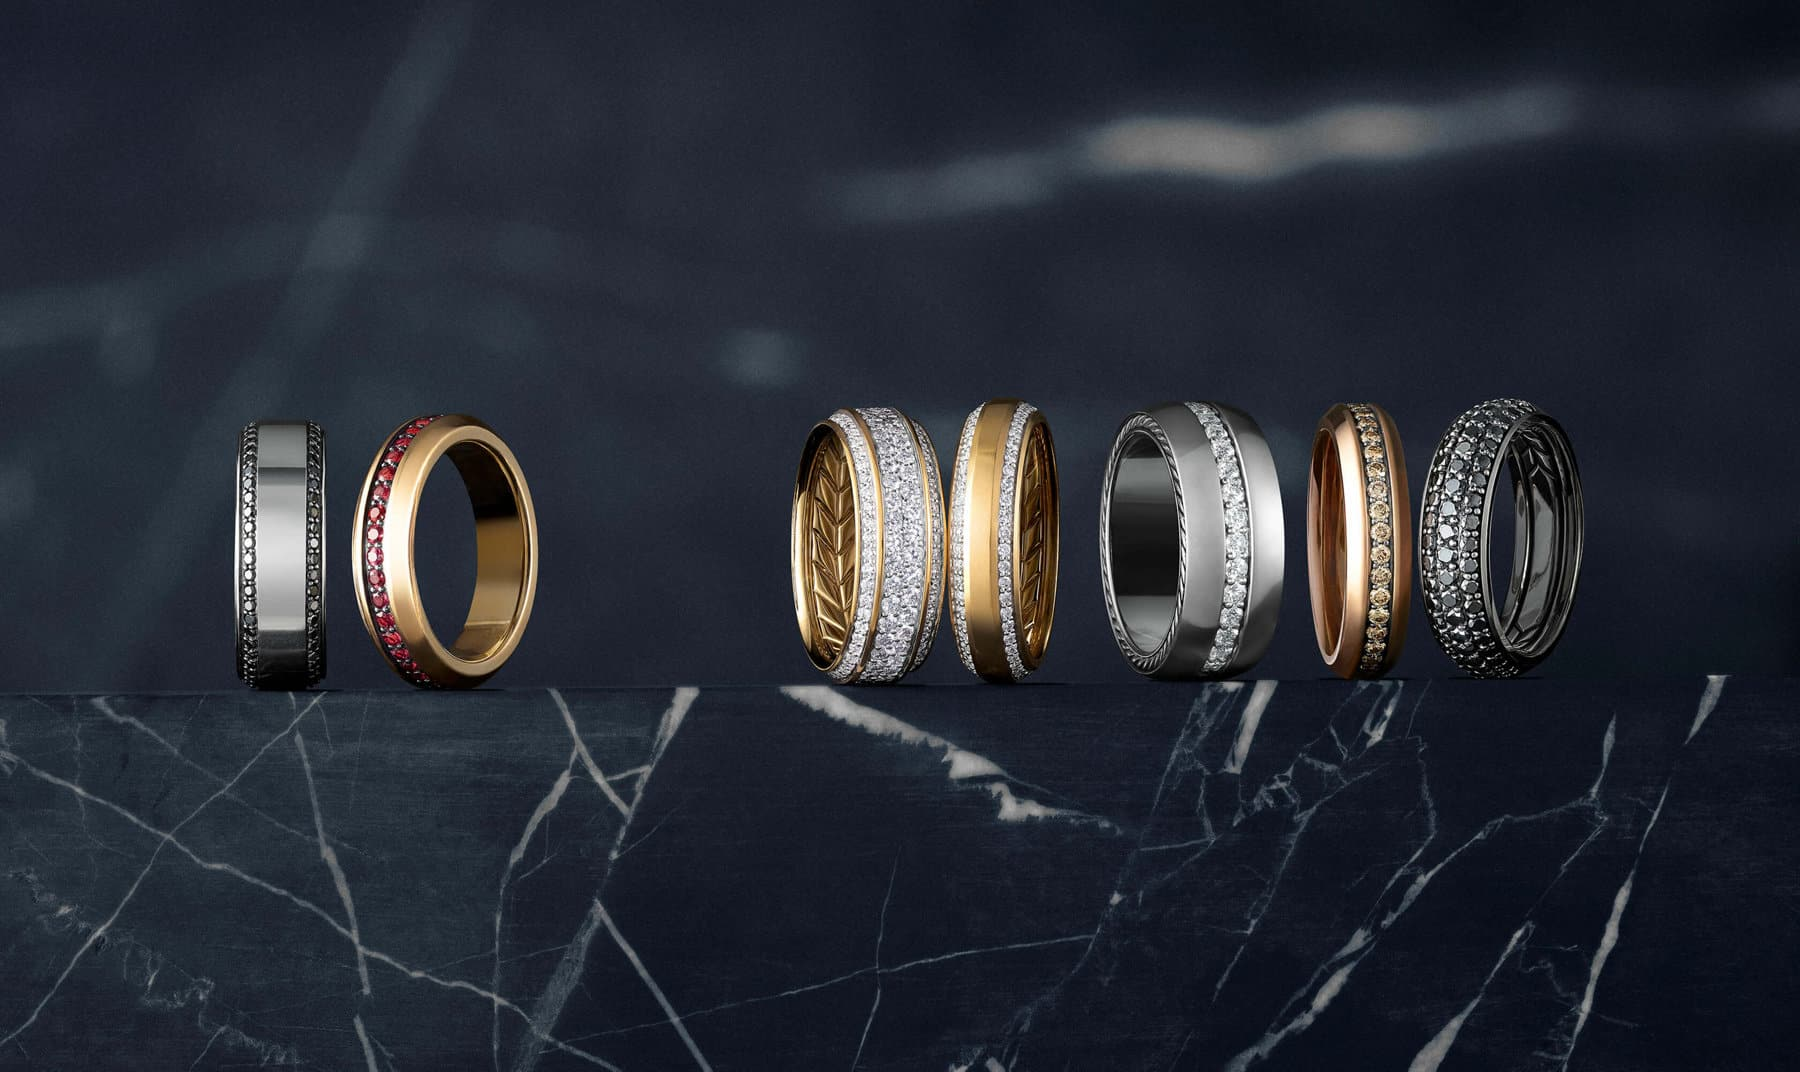 A color photograph shows a row of David Yurman men's wedding bands from the Beveled and Streamline collections atop a dark, marbled stone surface. The bands are crafted from 18K yellow, white or rose gold, grey titanium, or sterling silver and grey titanium with or without white, black or cognac diamonds or rubies.